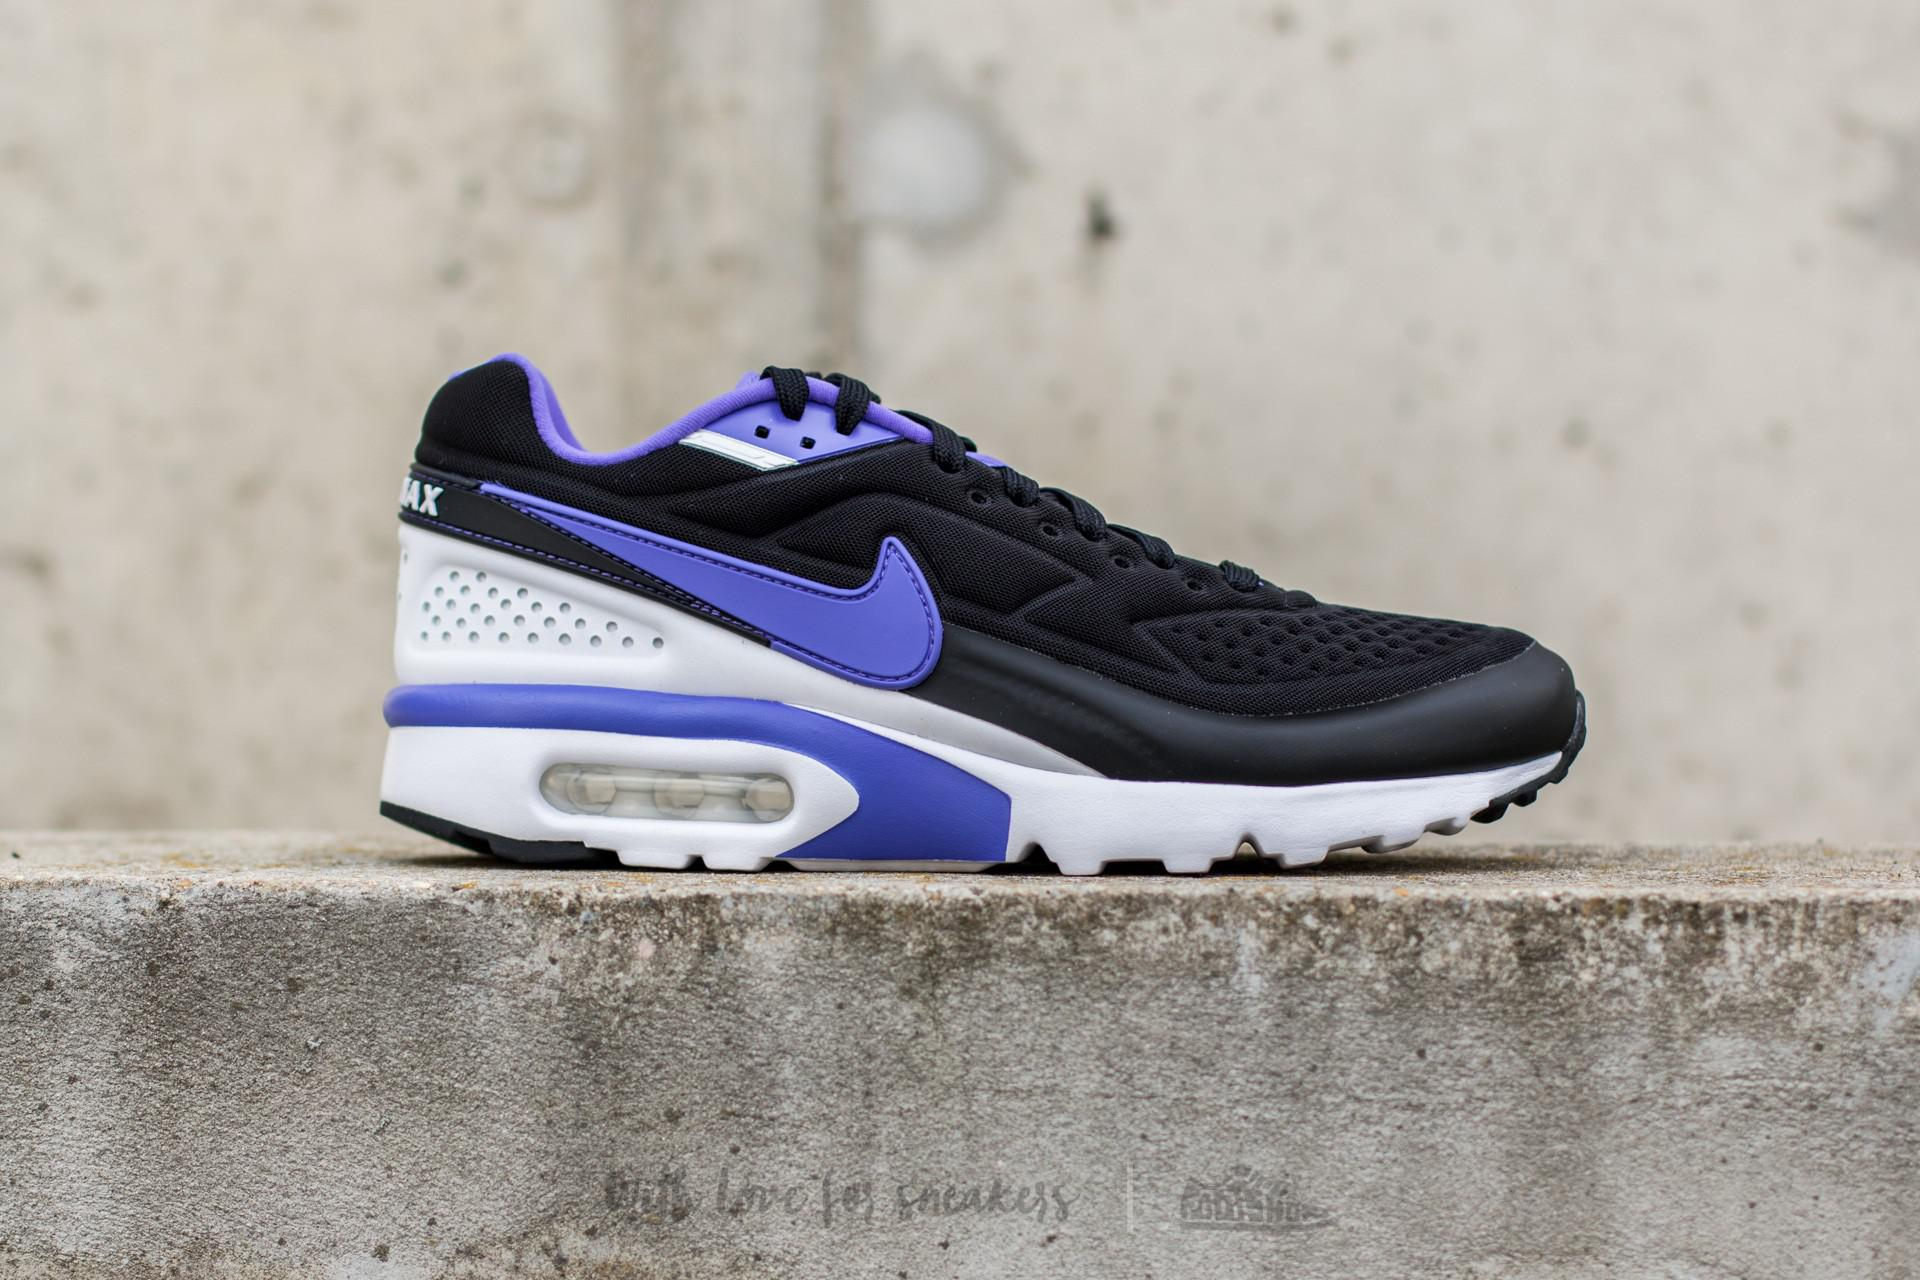 6a49c69be25 Lyst - Nike Air Max Bw Ultra Se Black  Persian Violet-white for Men